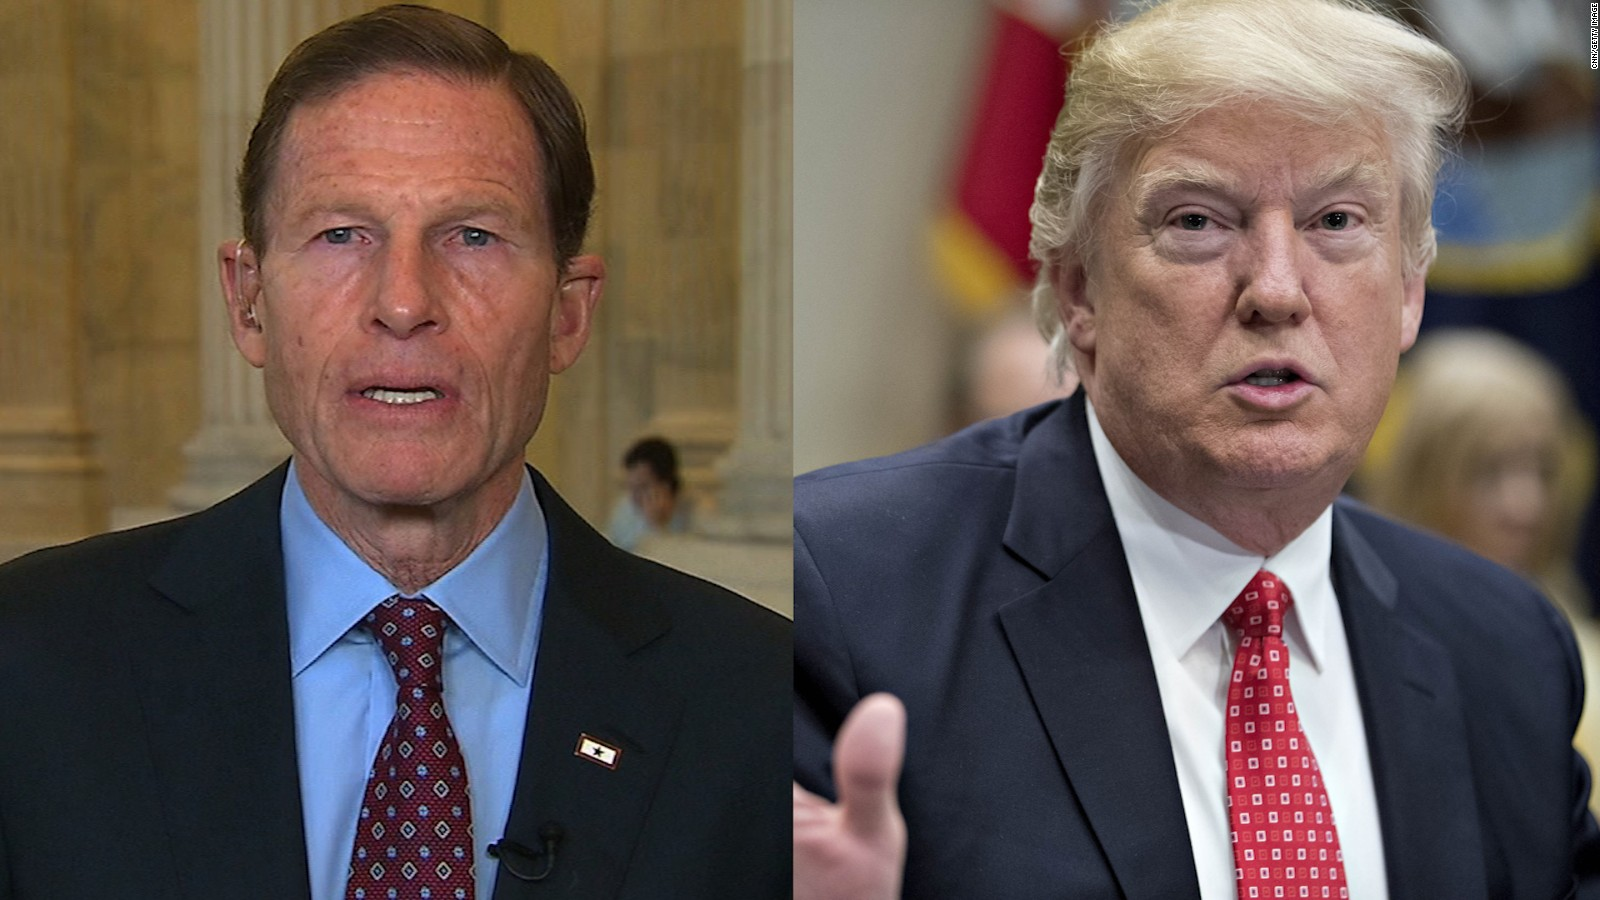 donald trump who never served in the military goes after senate veterans cnnpolitics